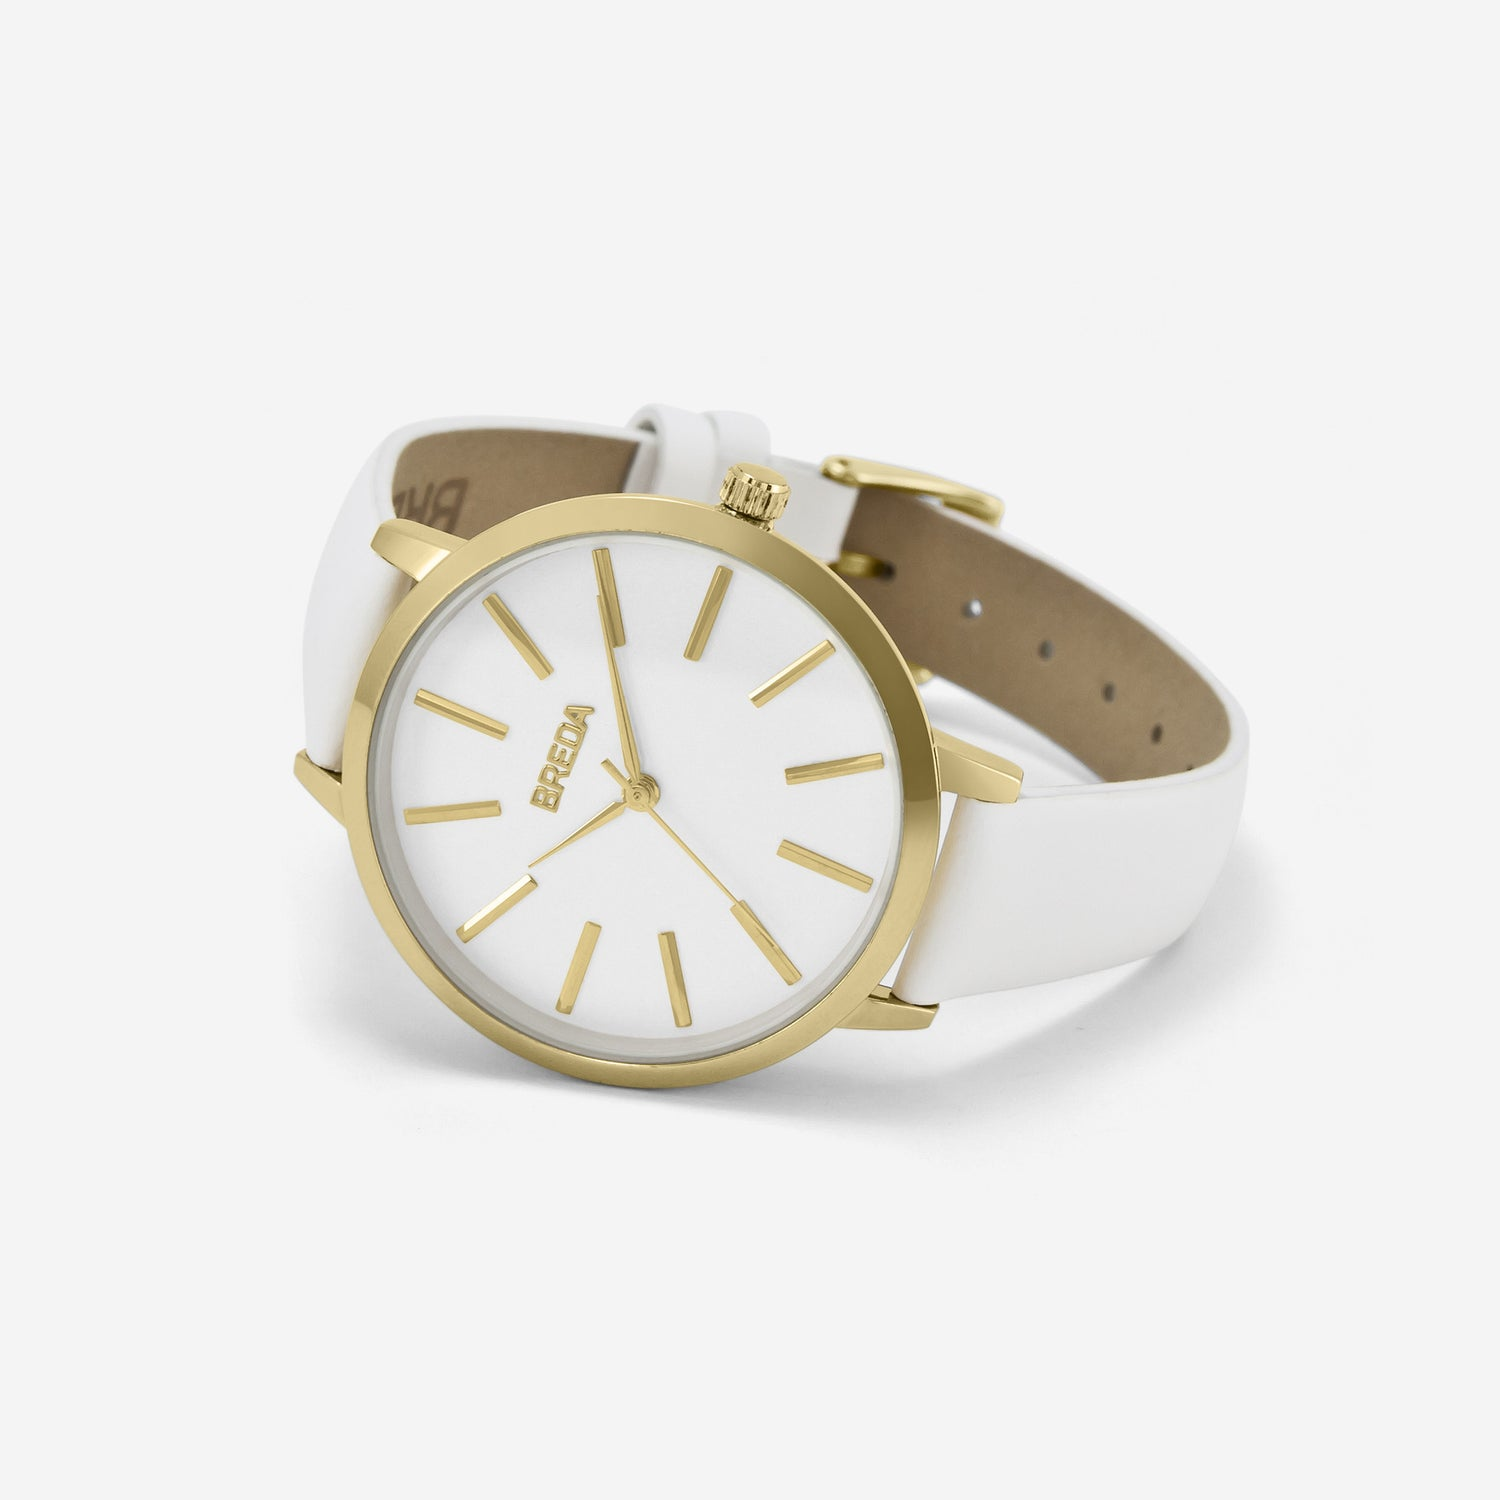 breda-joule-1722c-gold-white-watch-angle